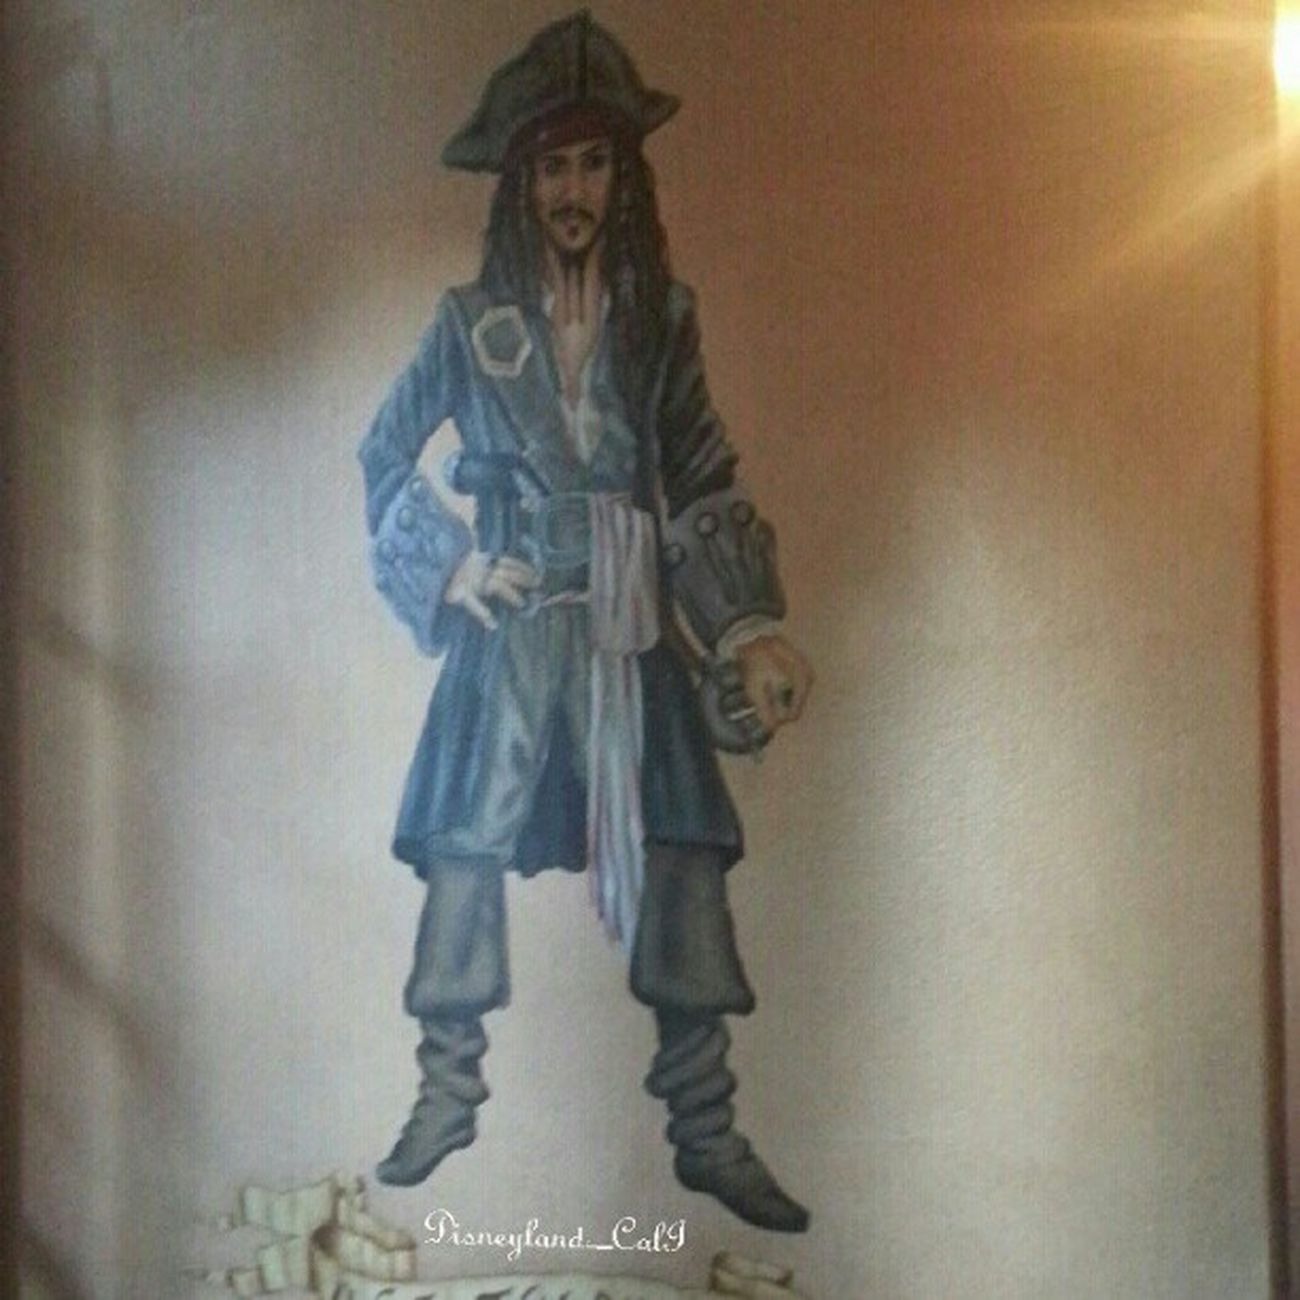 Pirates of the Caribbean Disneyland Disneyland_cali Piratesofthecarribean